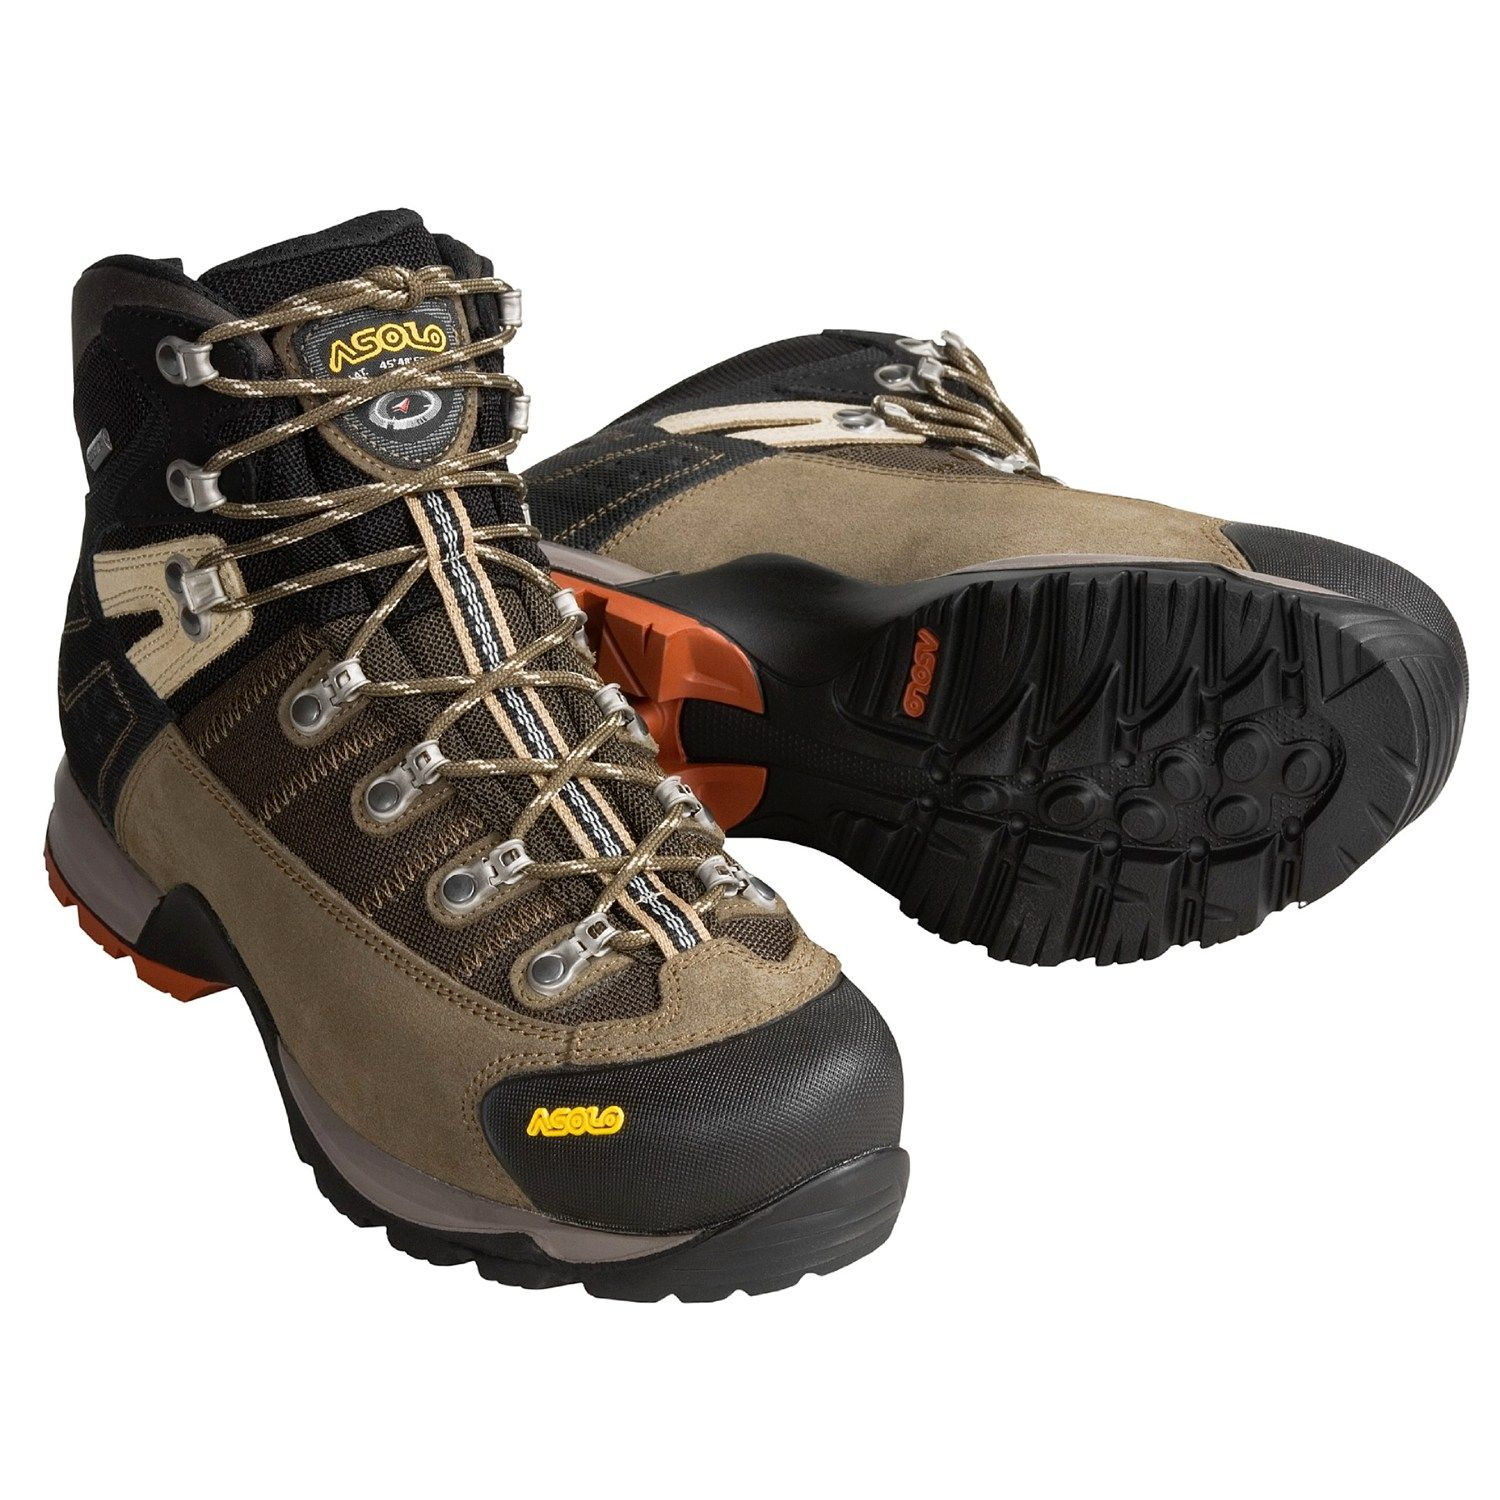 31e731a8e92 Asolo Fugitive Gore-Tex® Hiking Boots - Waterproof (For Men) | Boots ...